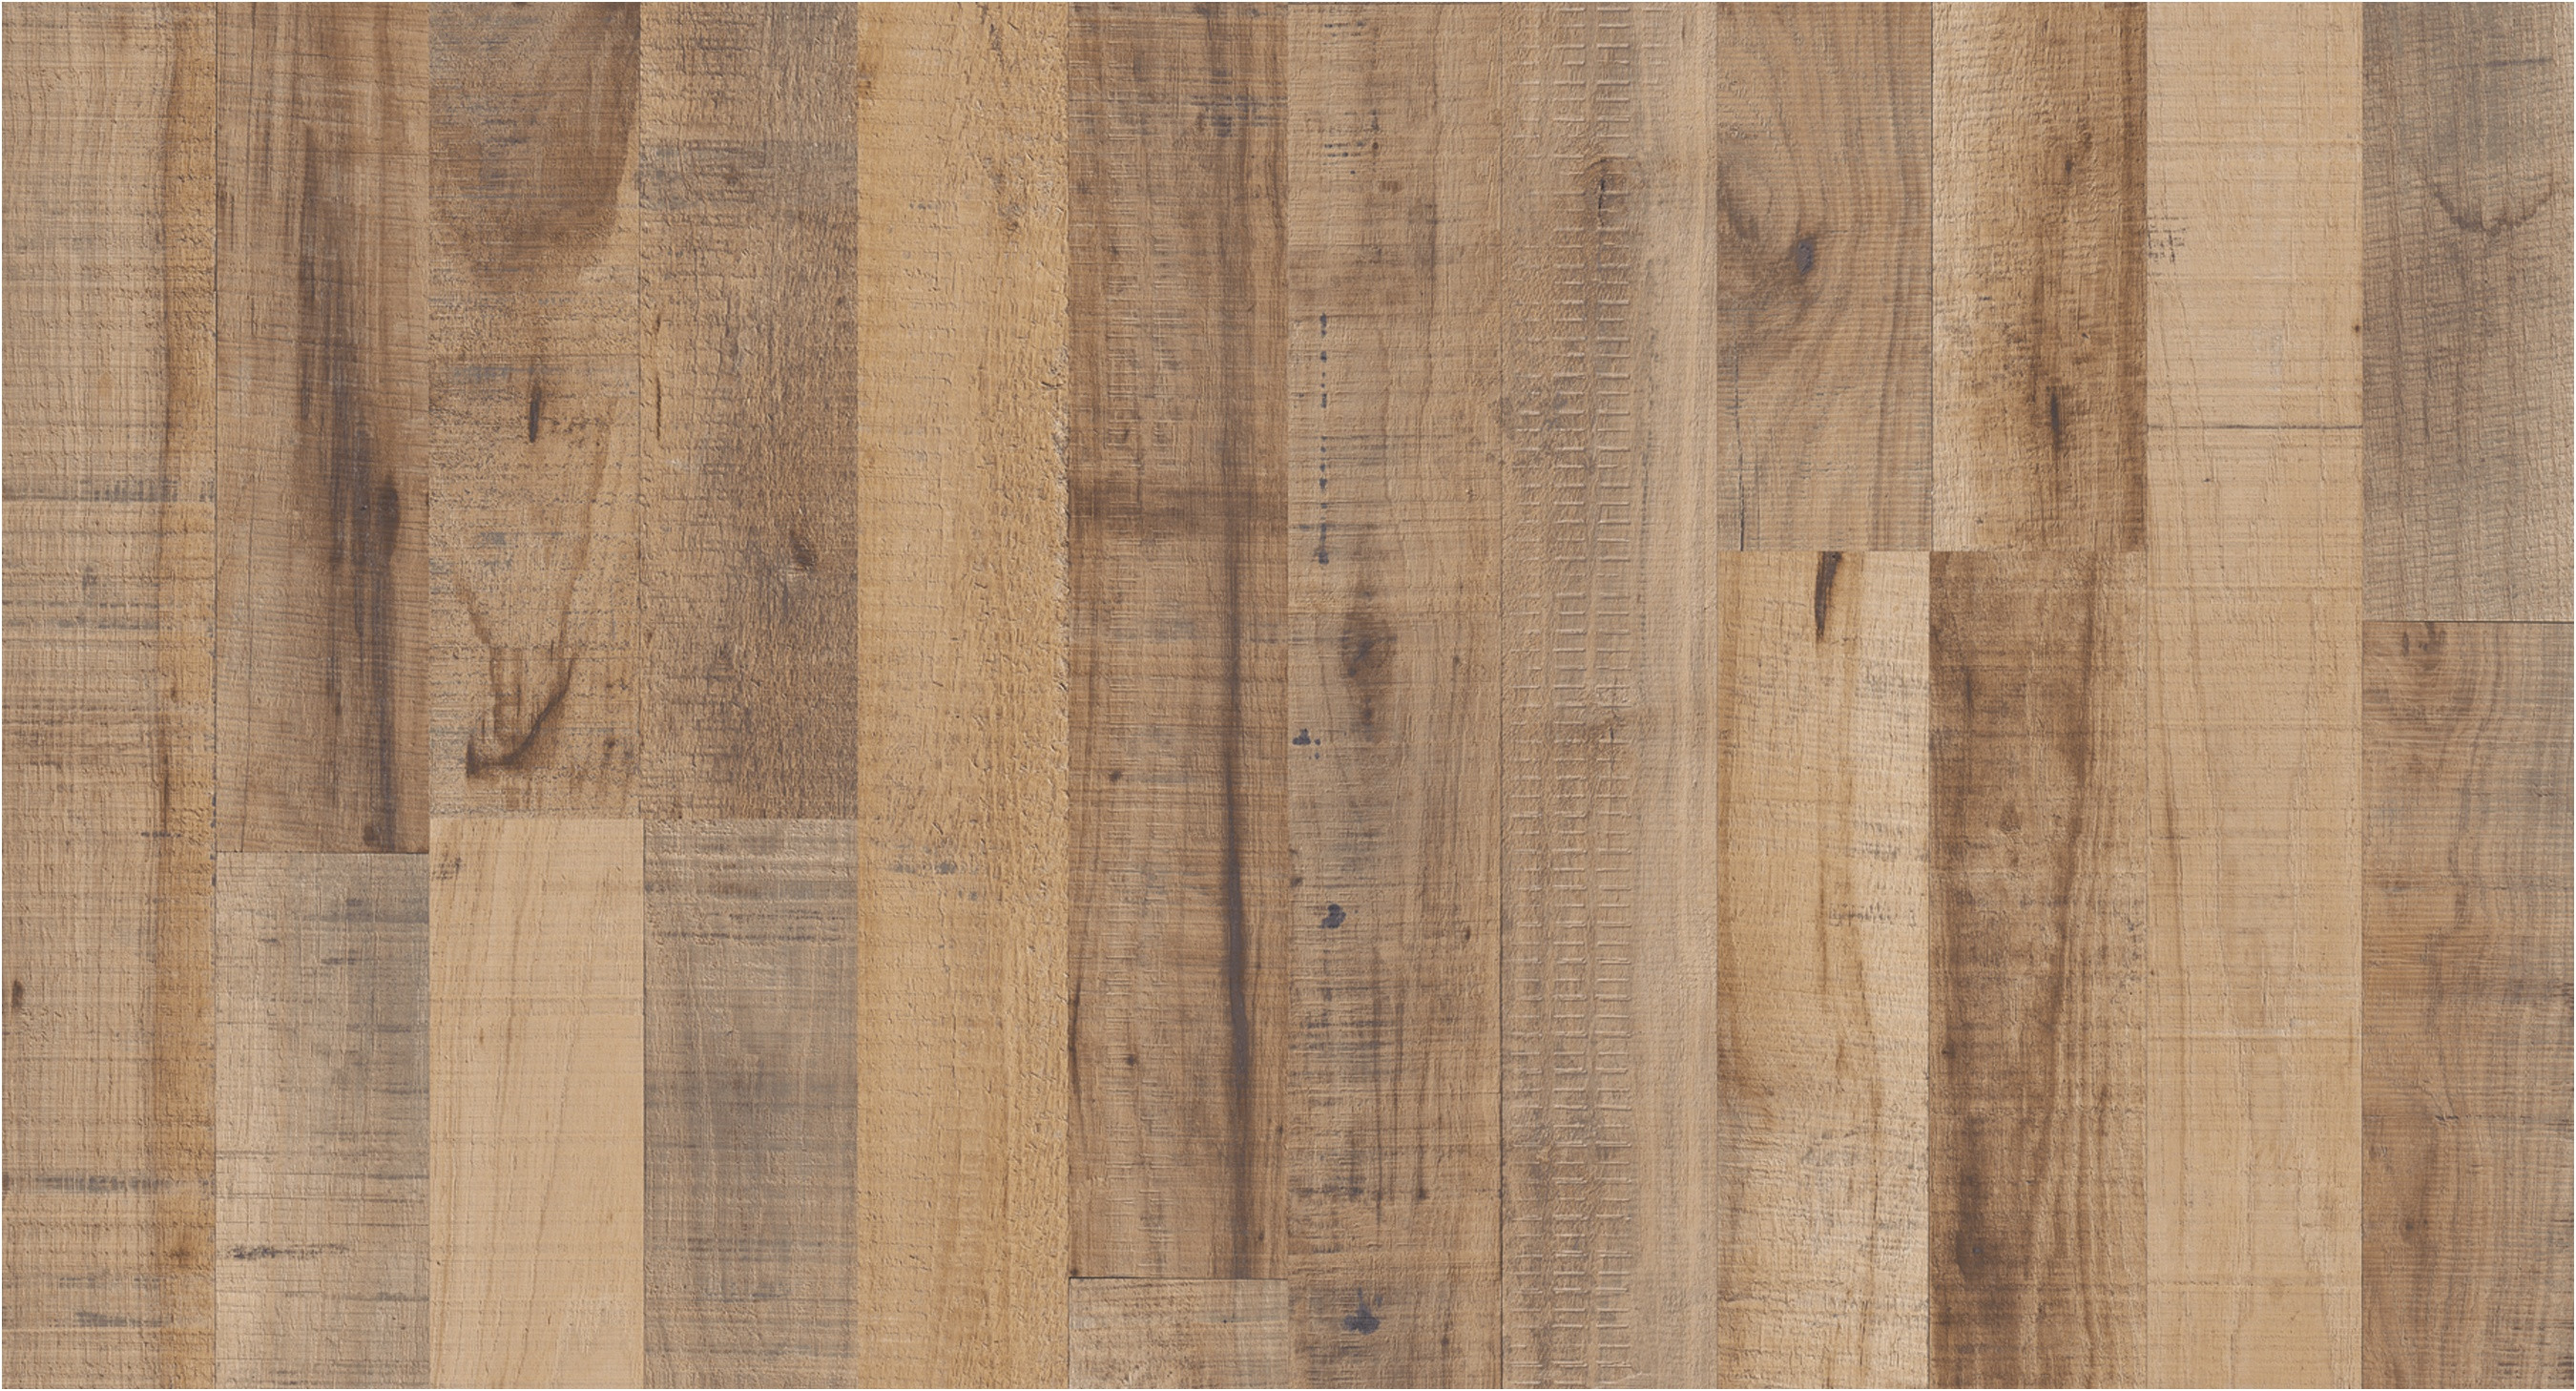 hardwood floor estimate calculator of how much flooring do i need calculator awesome custom hickory wide intended for how much flooring do i need calculator beautiful basic laminate flooring products of how much flooring